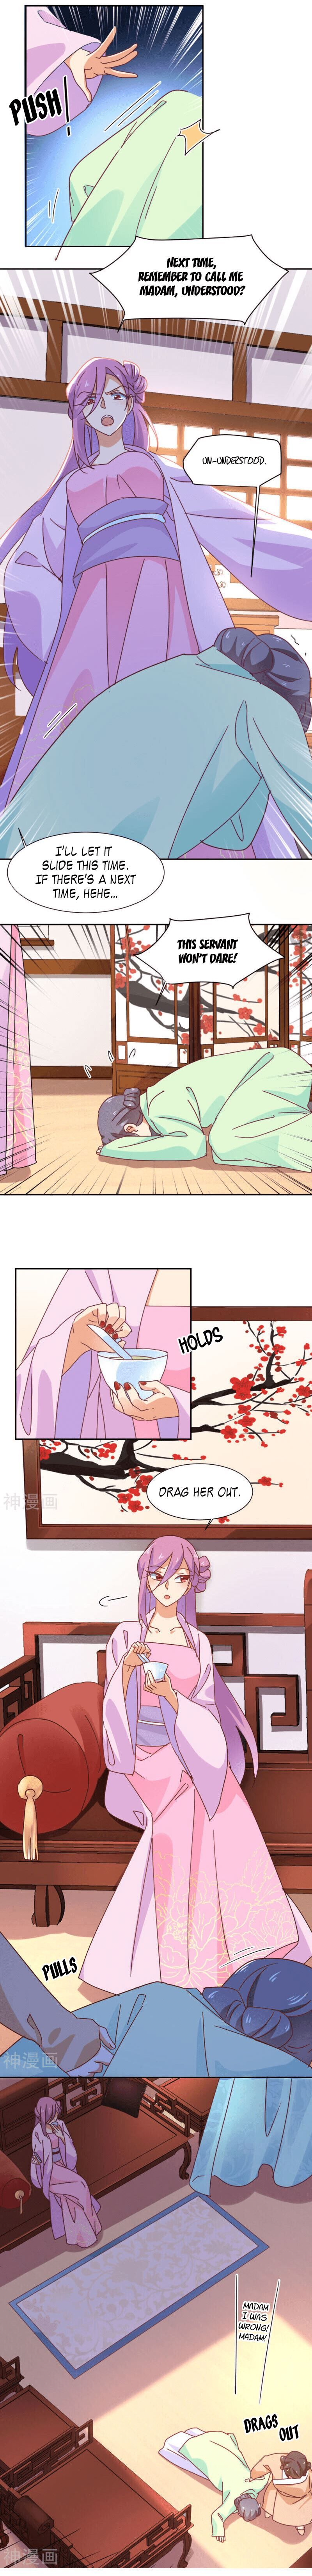 The Genius Princess's Road to Becoming Empress - chapter 19 - #3